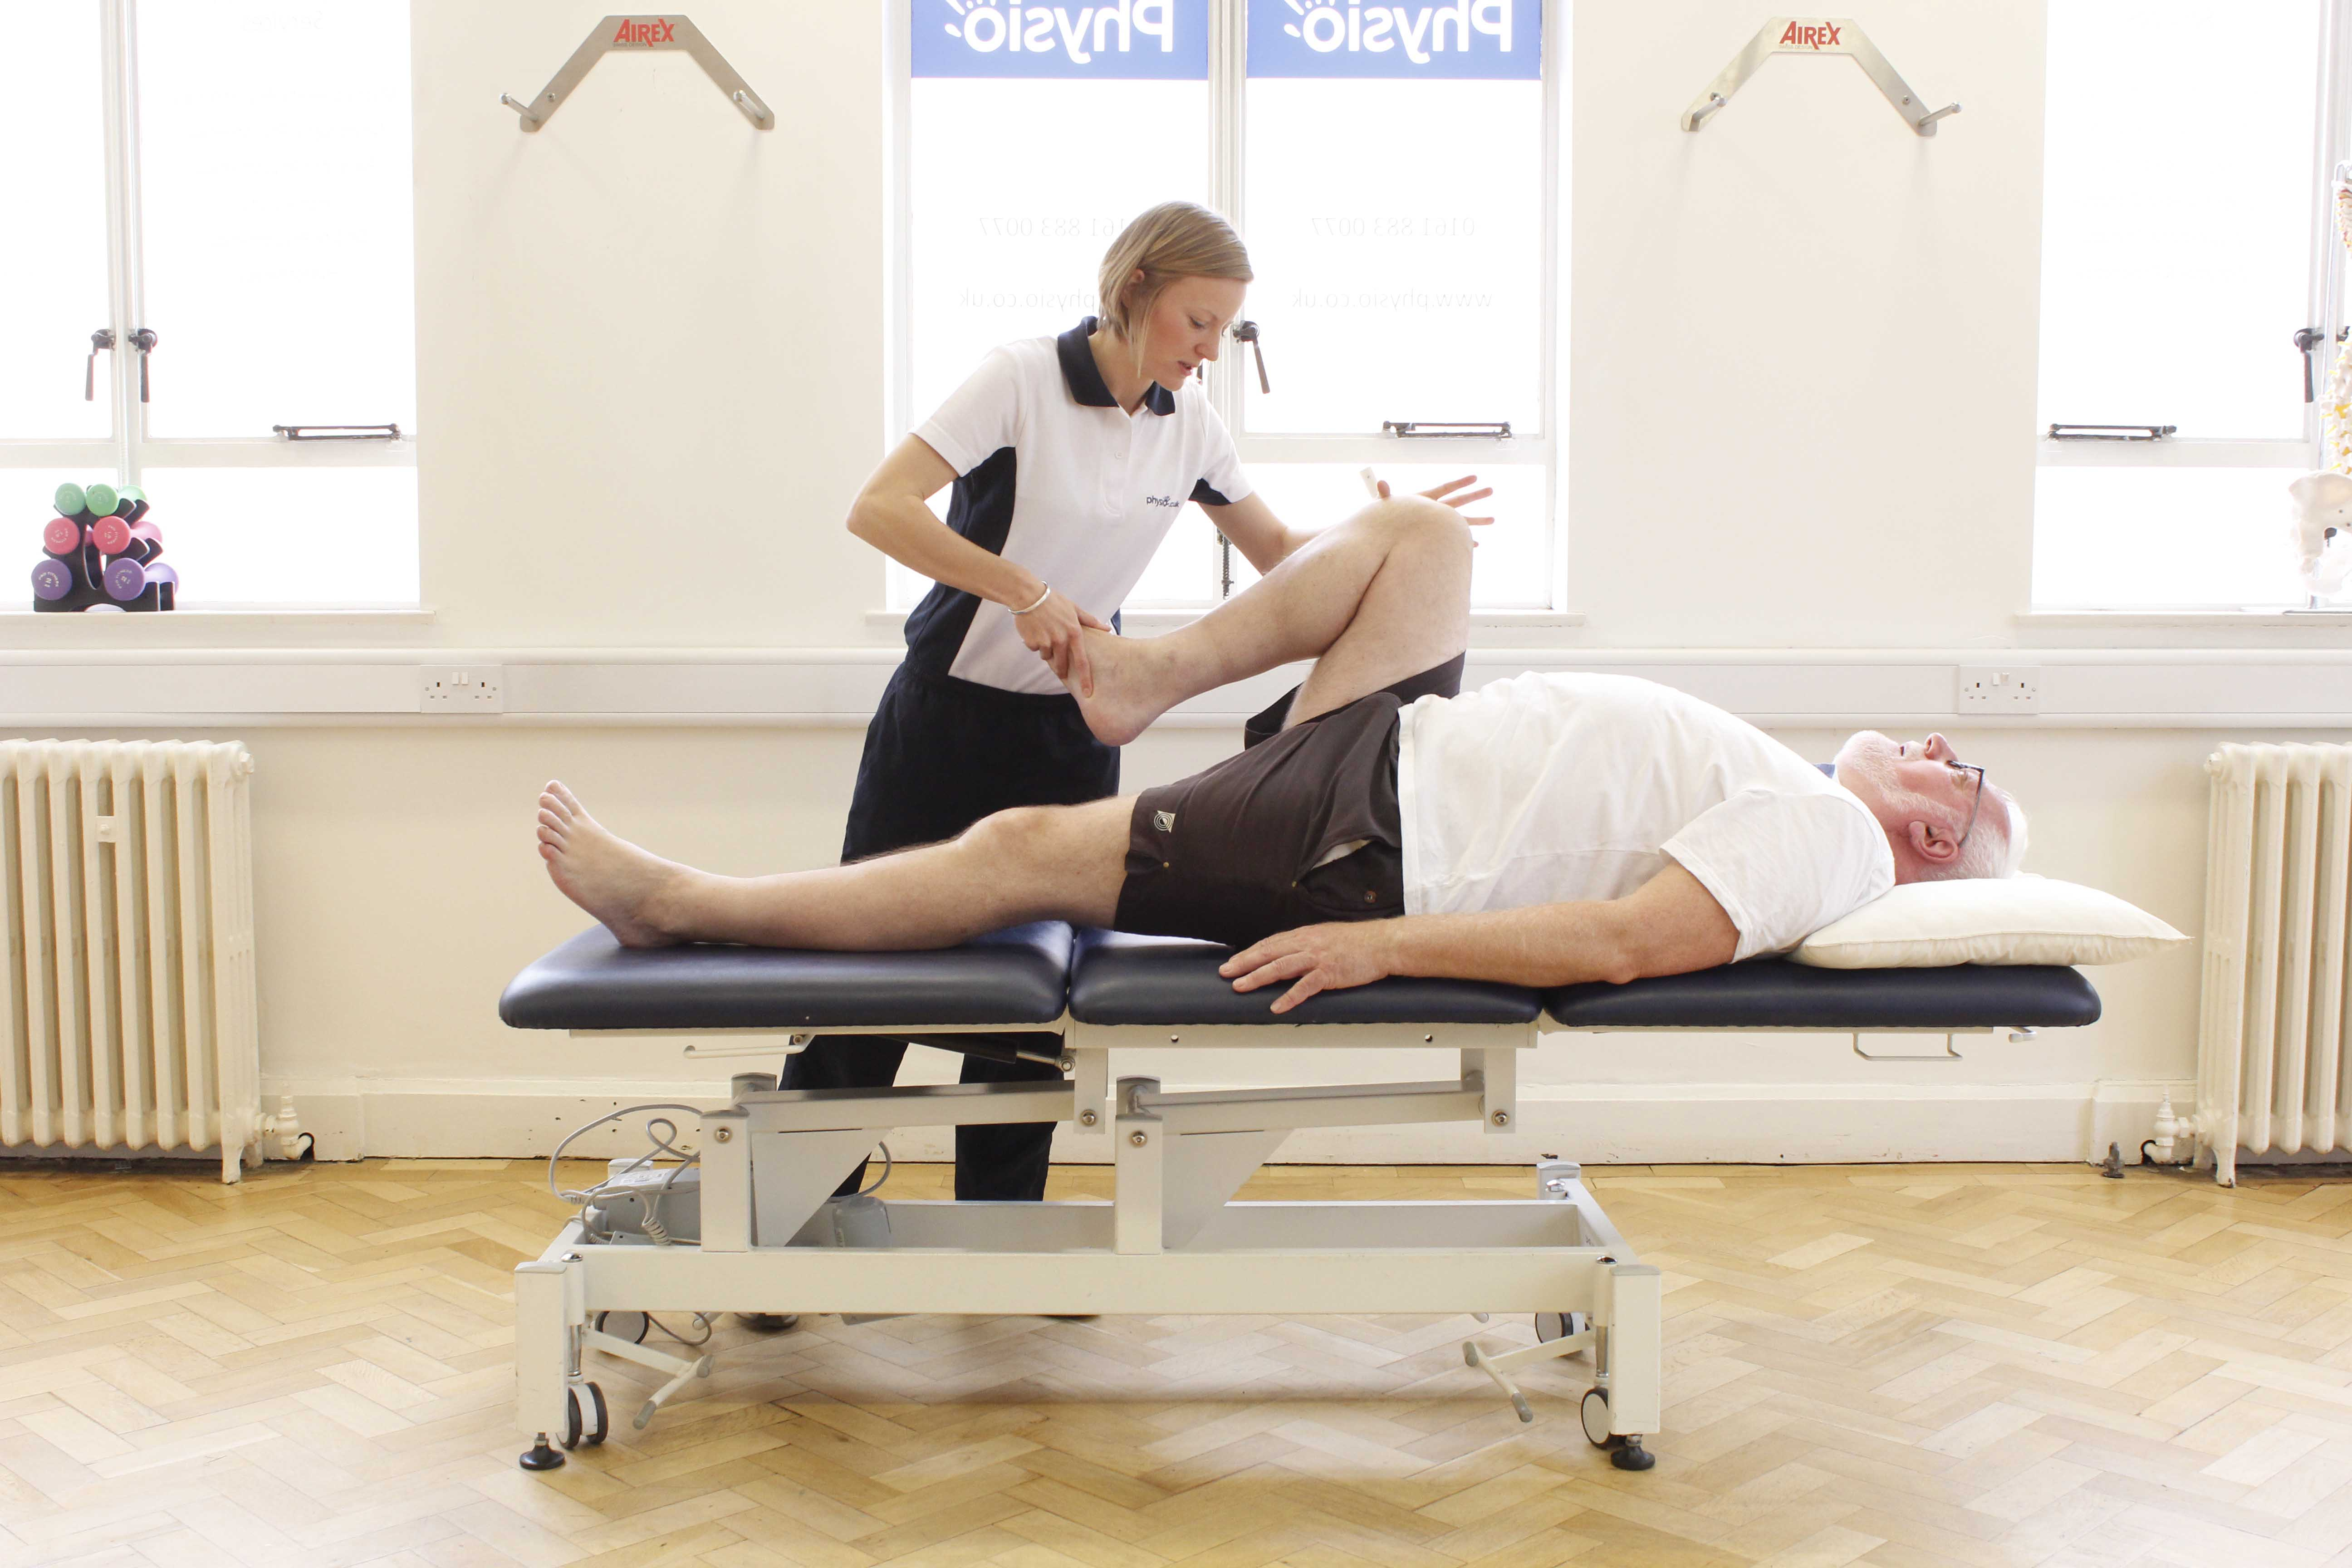 mobilisation and stretch exercises to the hip, knee and ankle applied by a specialist physiotherapist